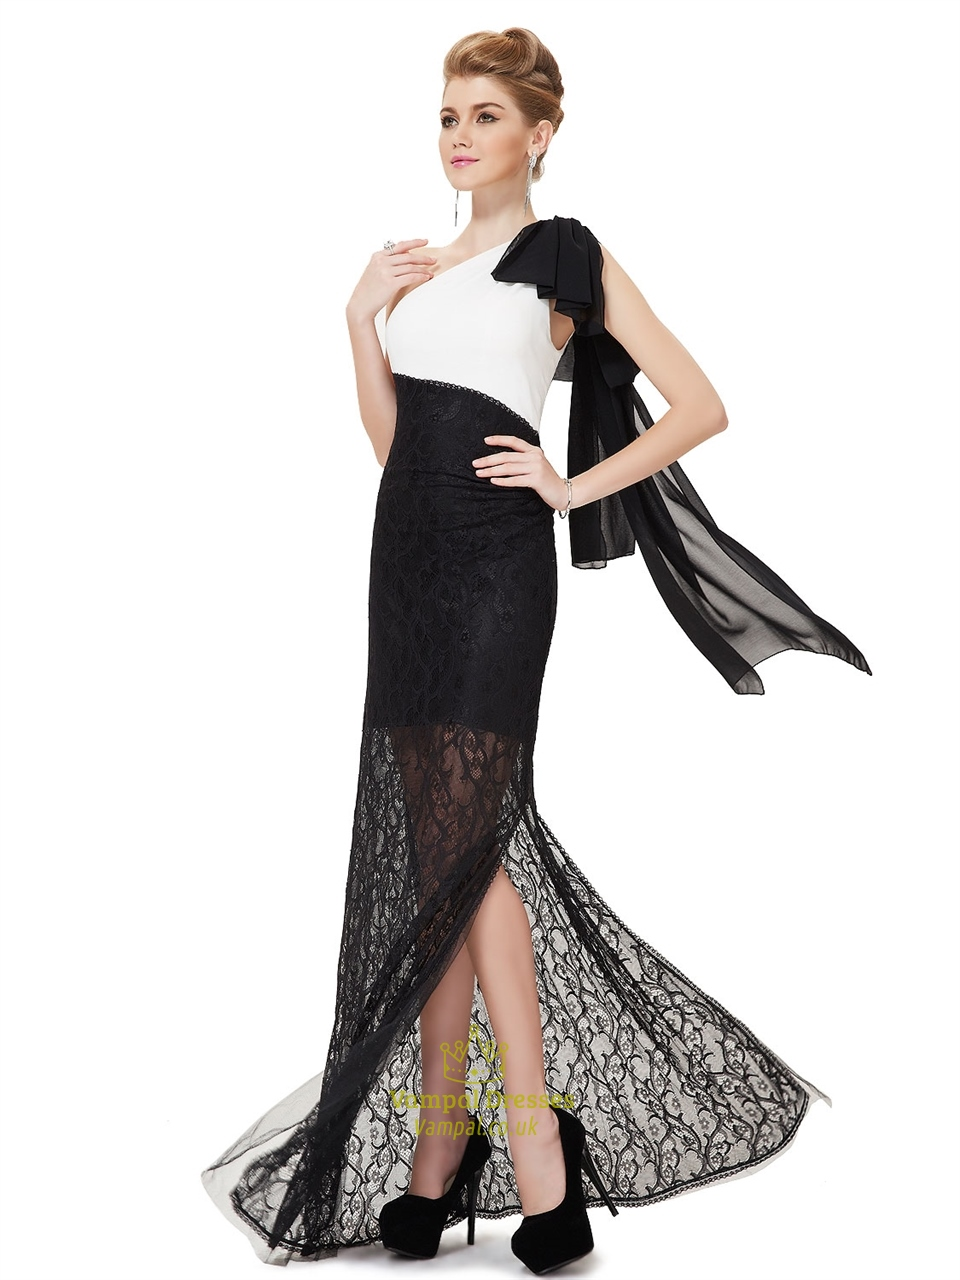 White And Black Lace One Shoulder Prom Dress,White Top ...One Shoulder Black Prom Dresses